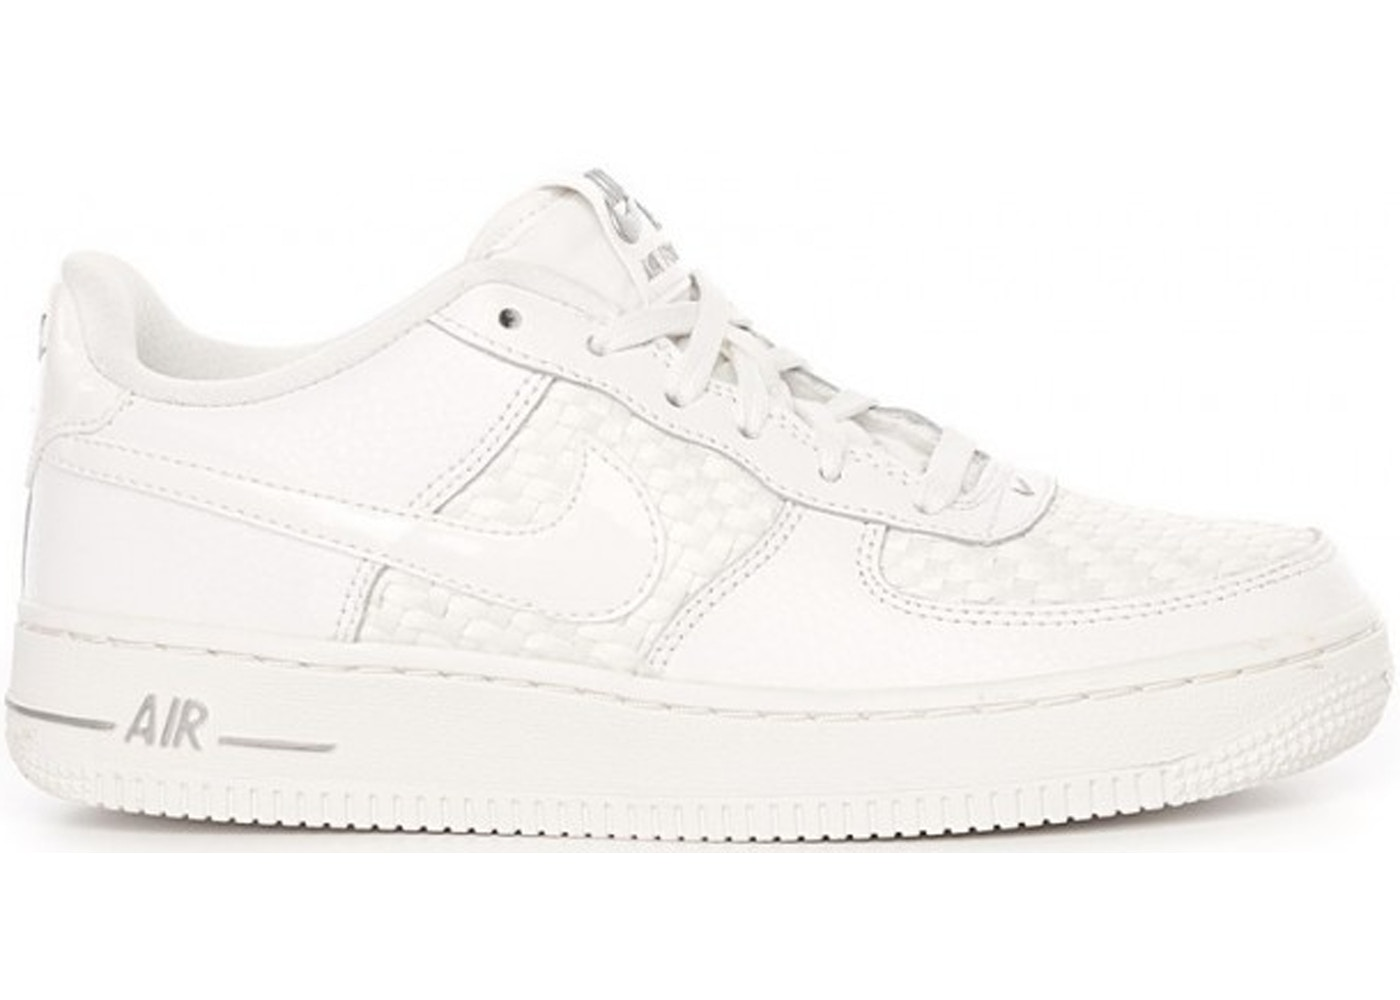 Nike Air Force 1 Low Triple White Leather Woven (GS)